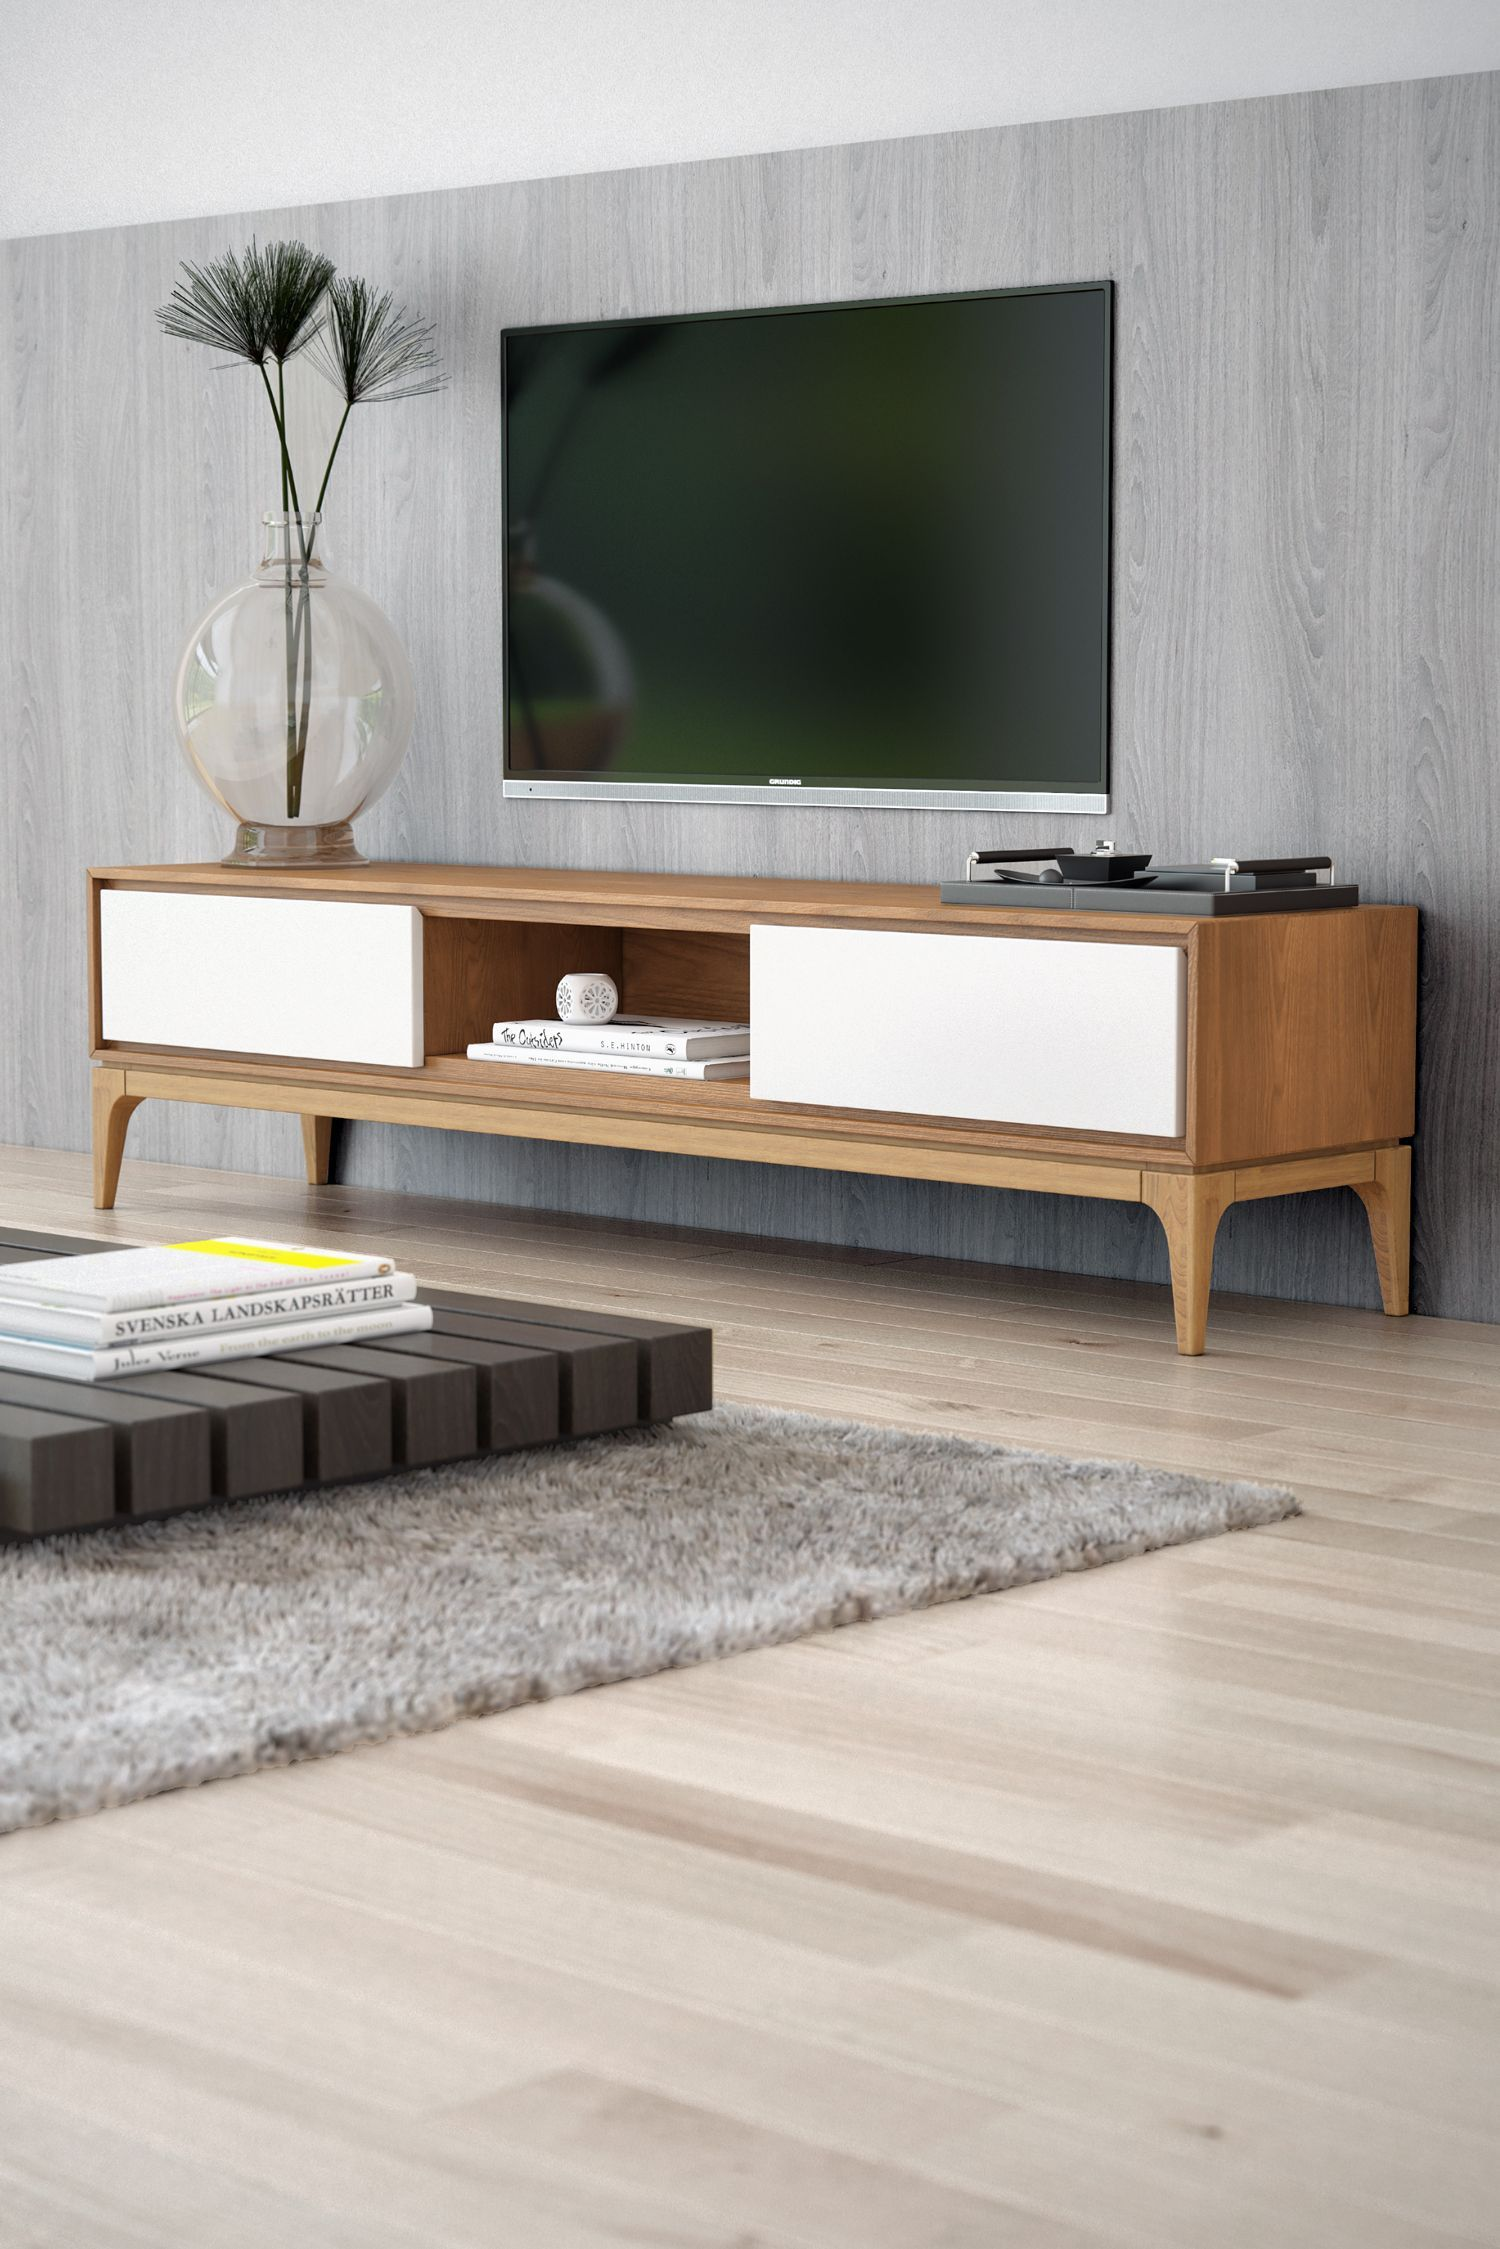 Design For Living Room Tv Cabinet: Tv Stand Mid Century, Tv Stands And Mid